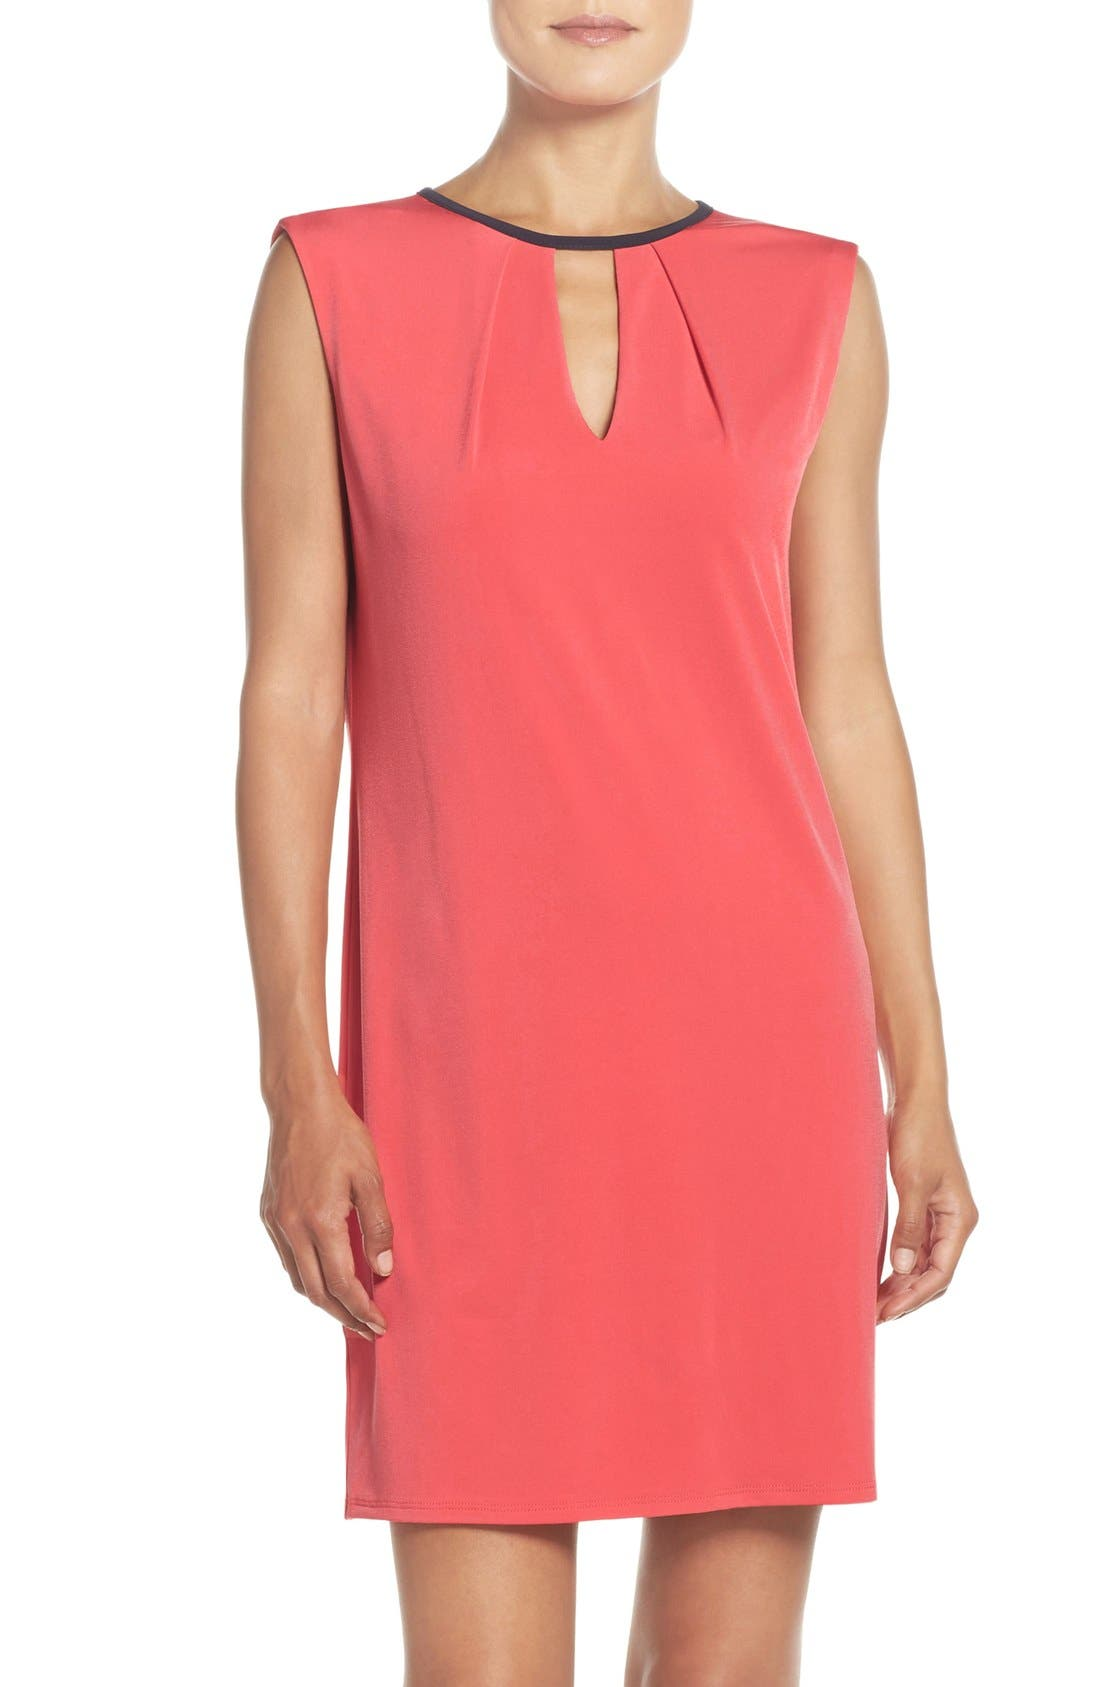 Alternate Image 1 Selected - KUT from the Kloth Knit Shift Dress